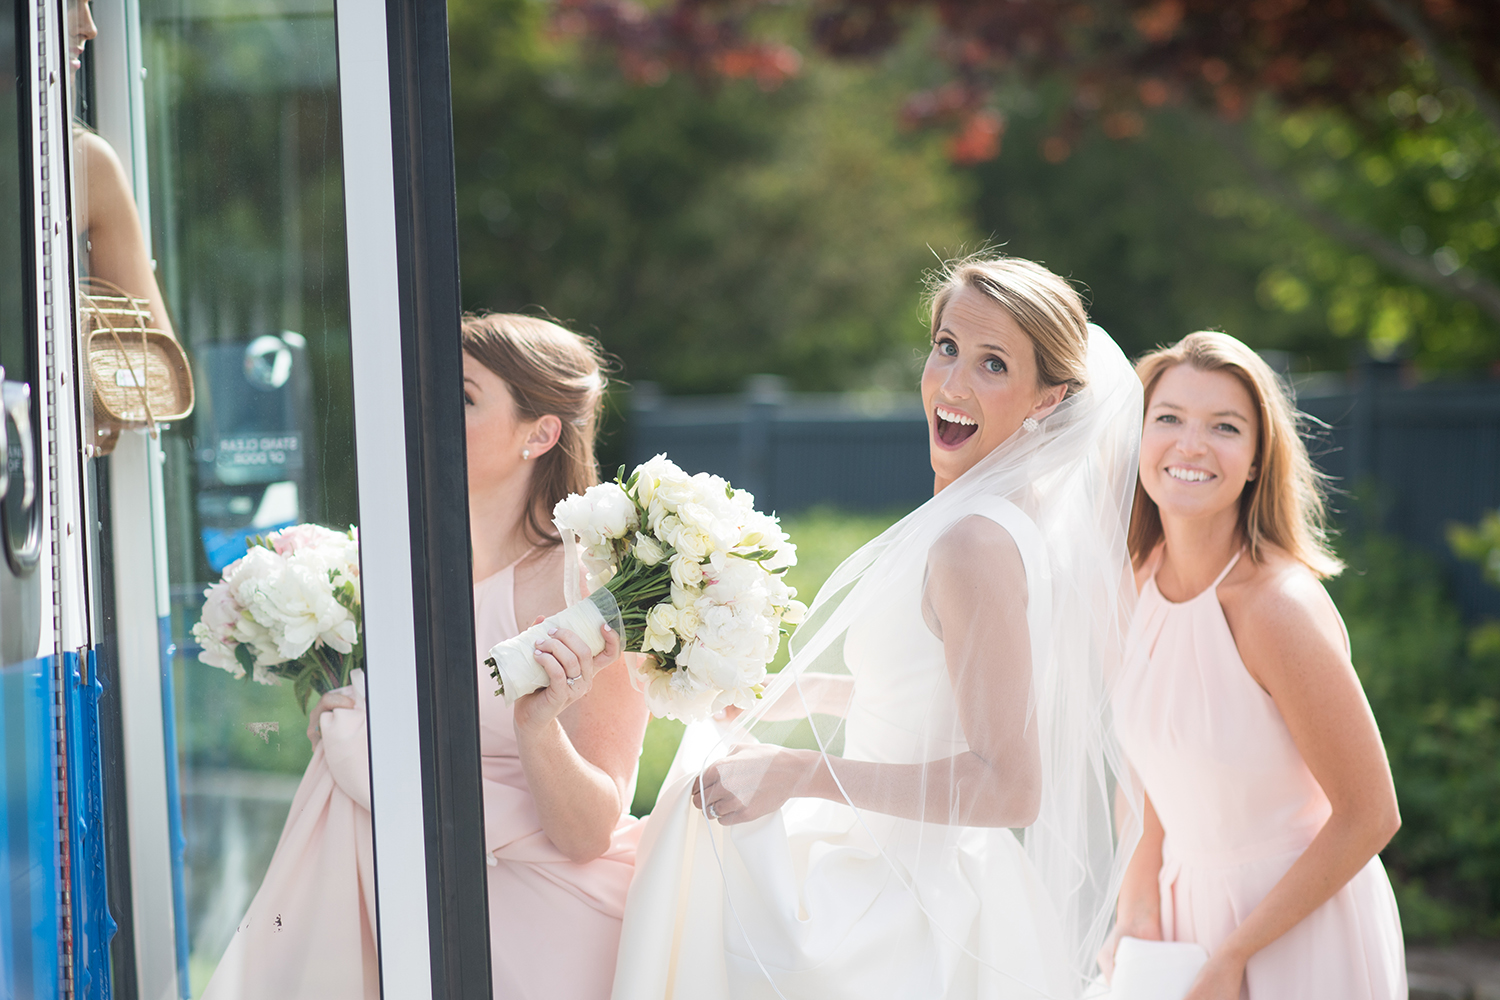 st-andrews-hyannisport-wedding-photographer-25